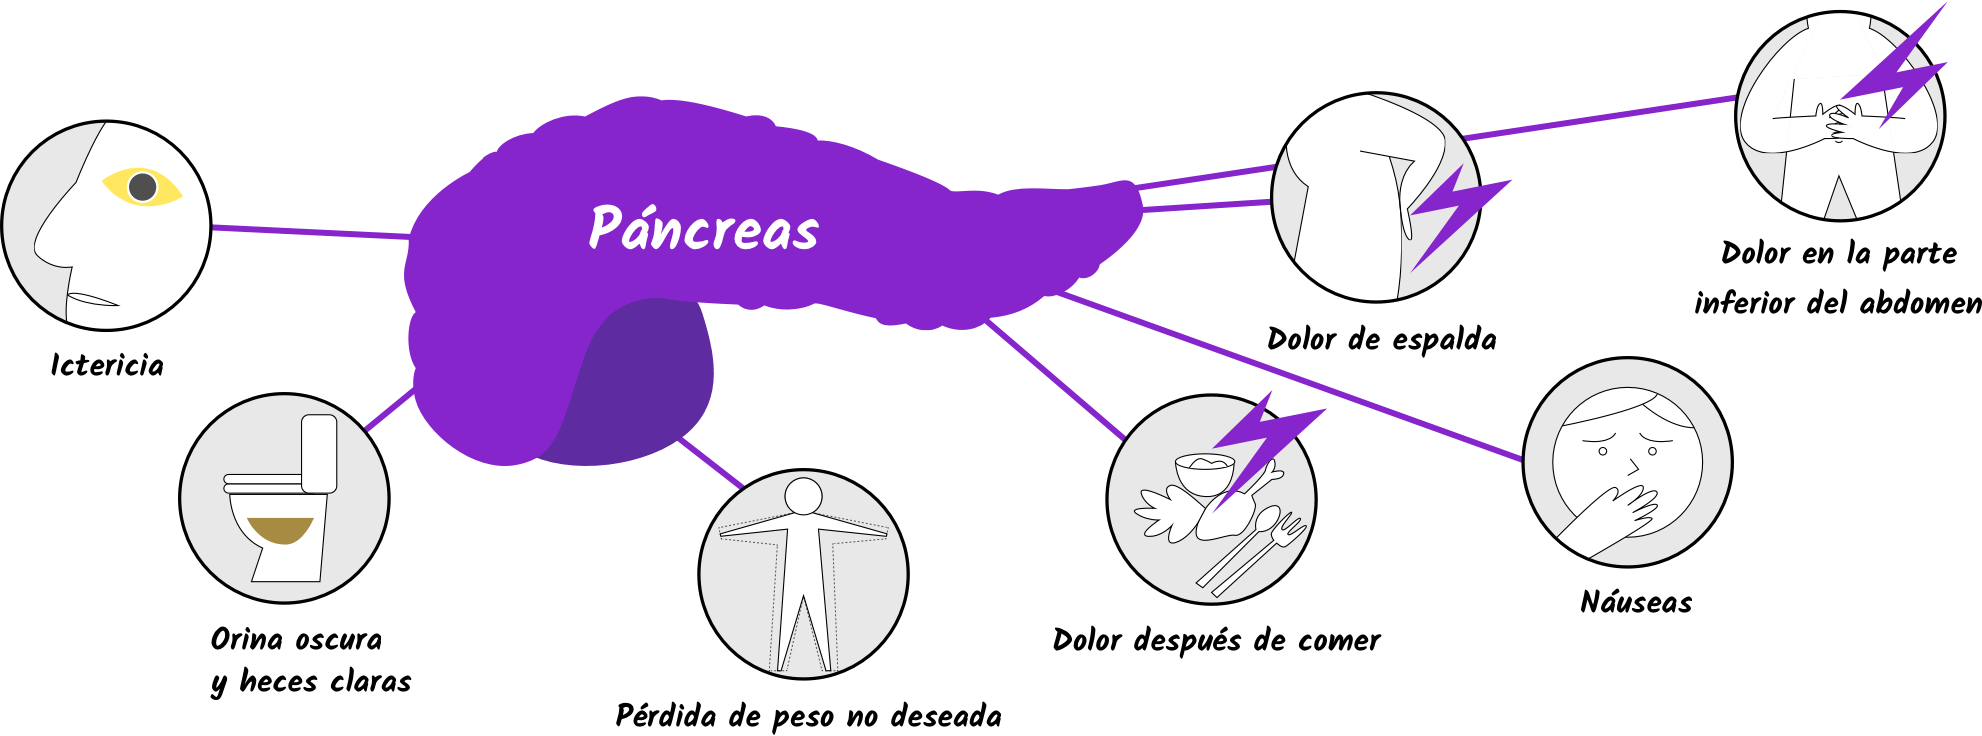 cancer pancreas dolor